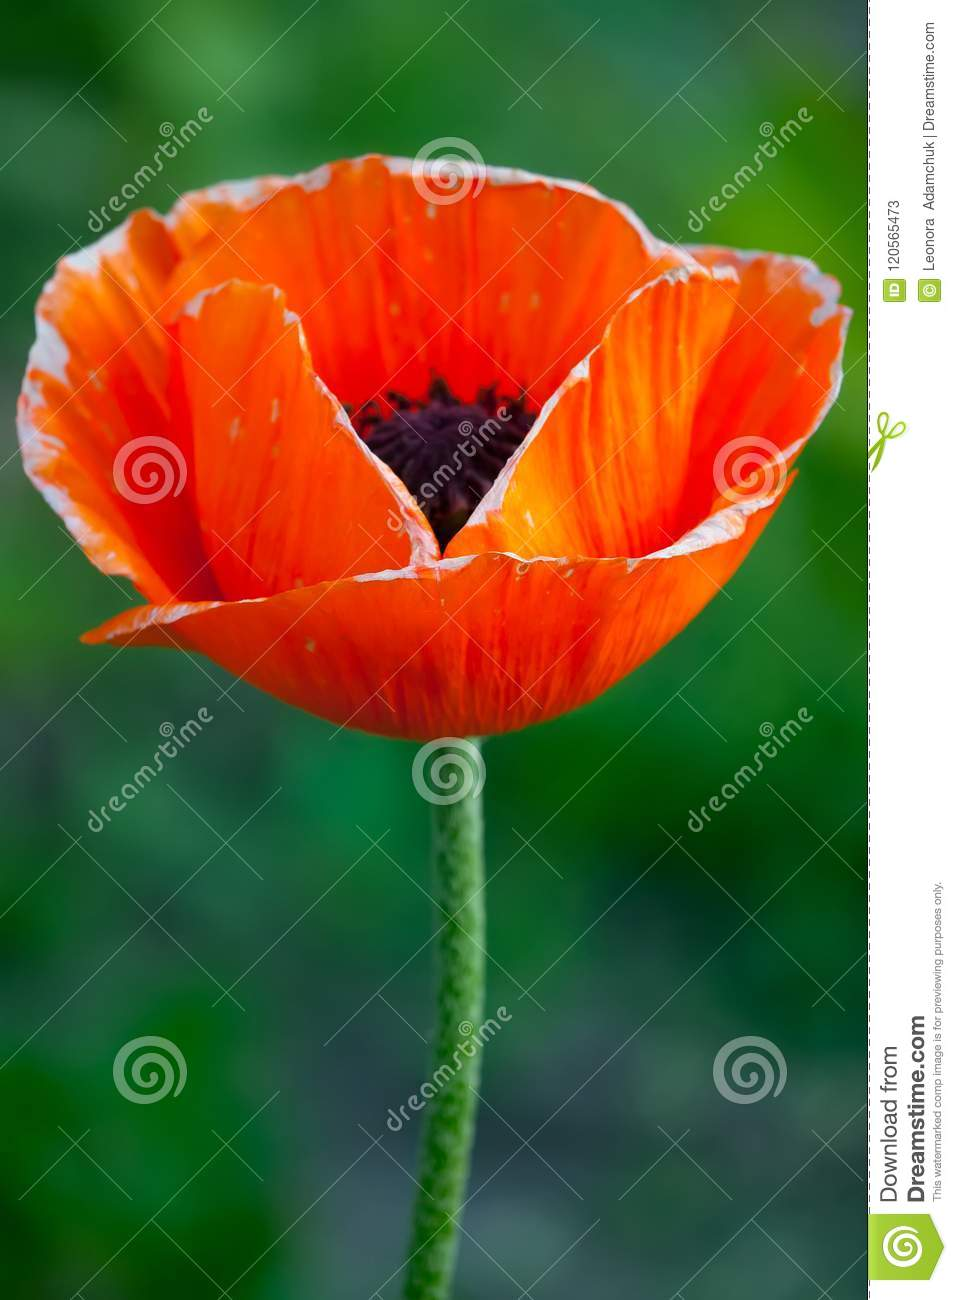 A brightly red poppy flower with a blurred background petals like a brightly red poppy flower with a blurred background petals like flames mightylinksfo